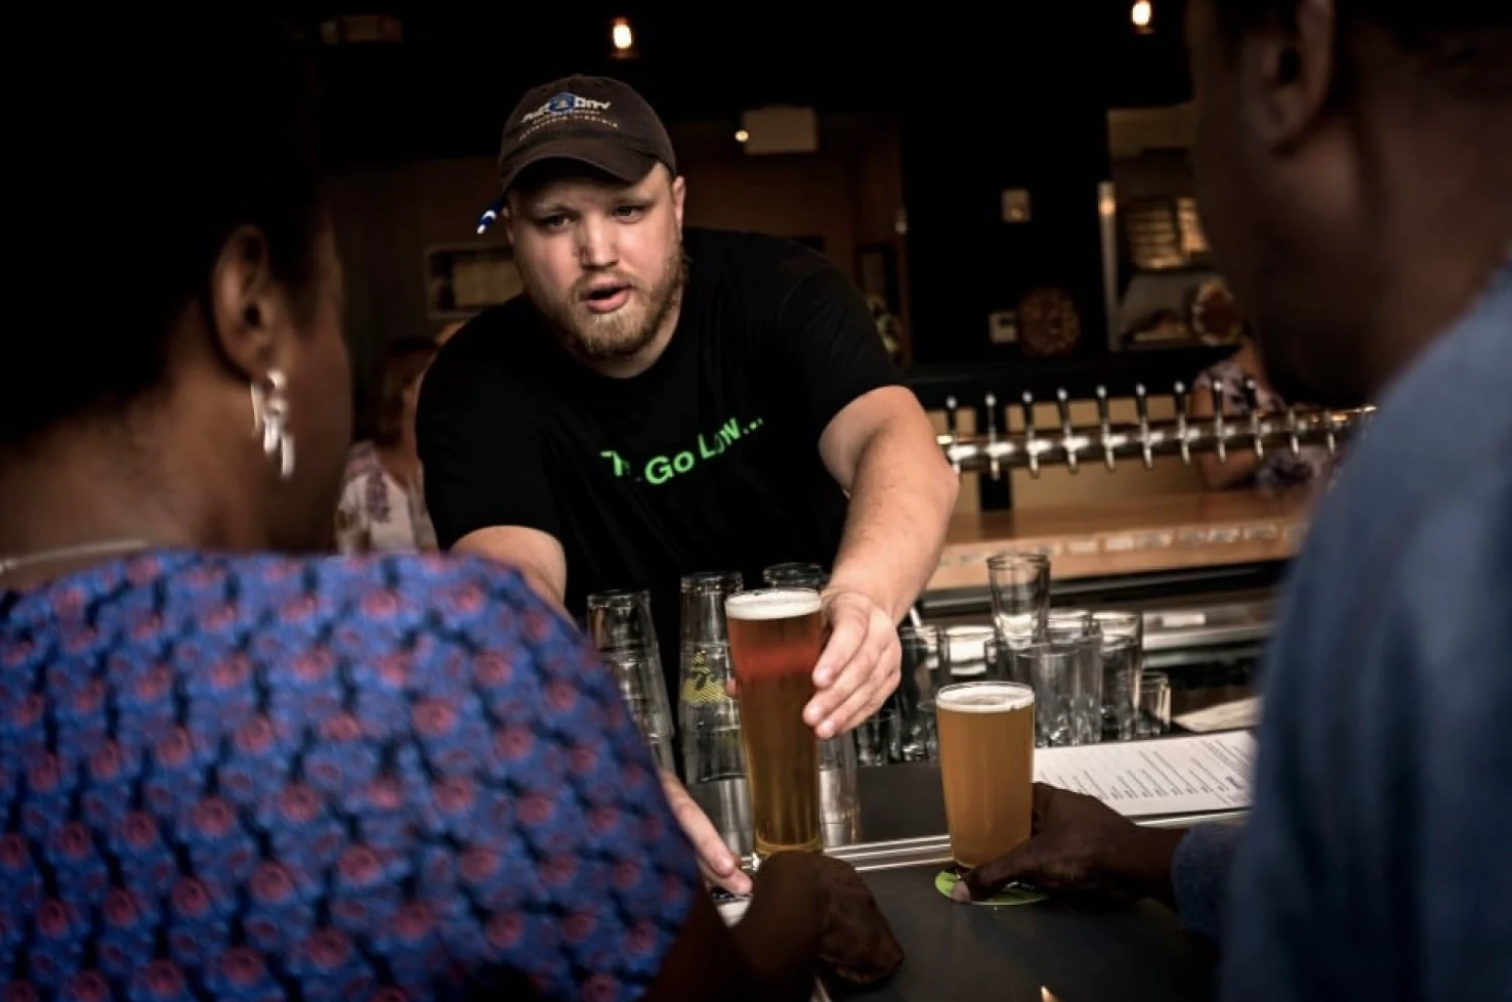 More bars are booting corporate beer